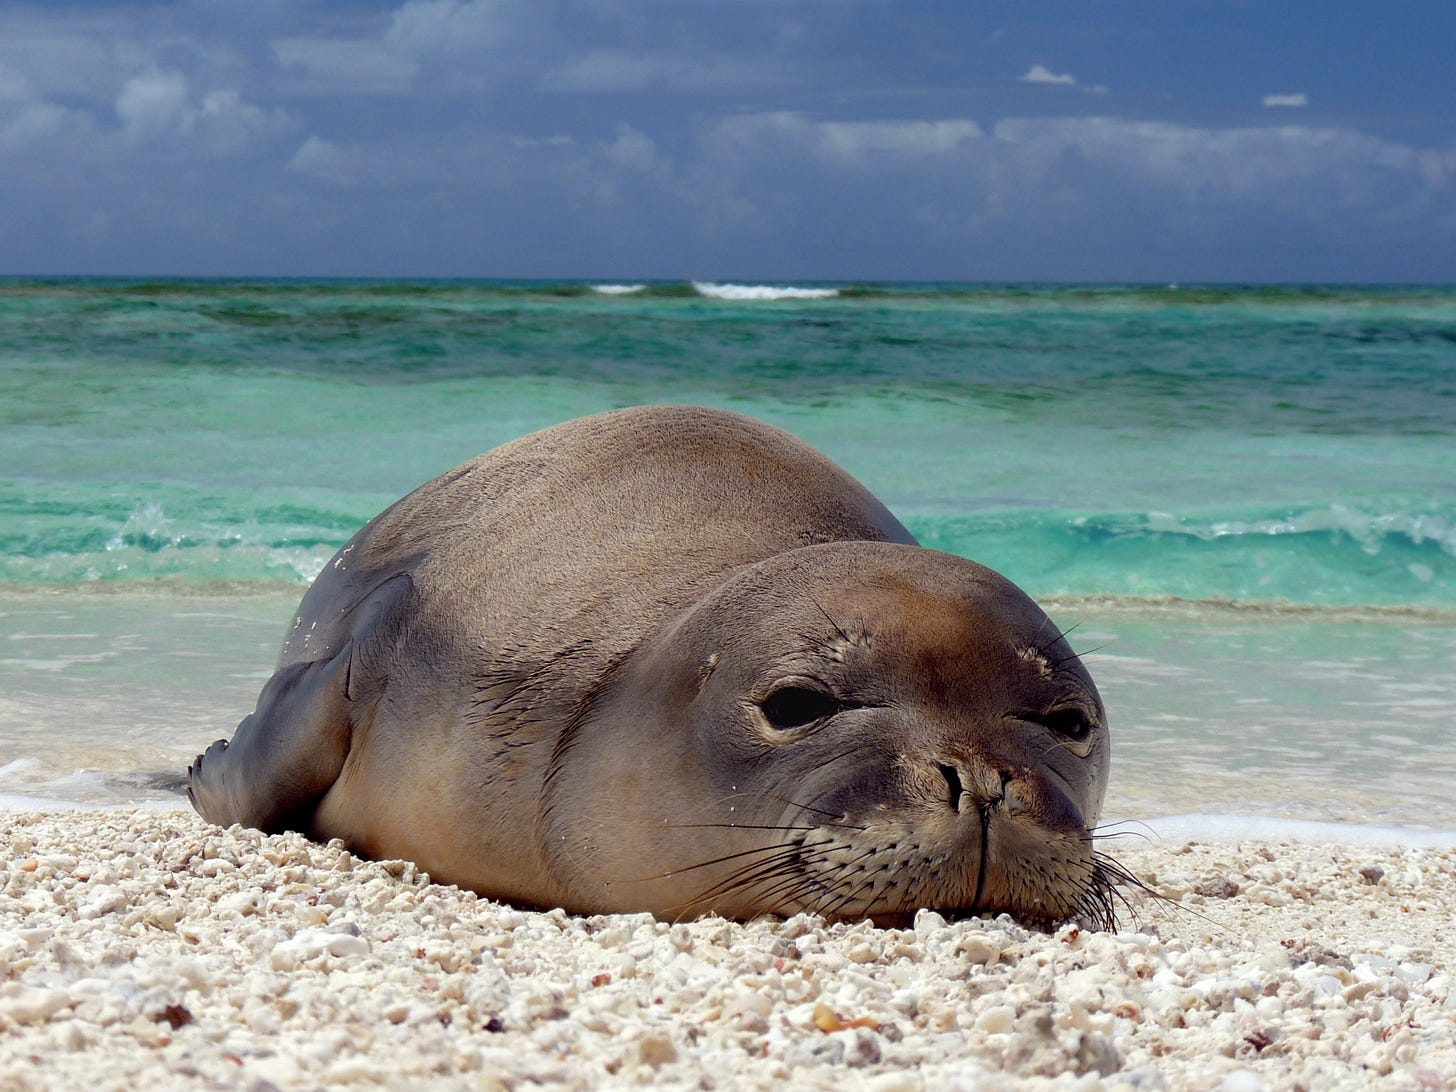 File:Hawaiian monk seal at French Frigate Shoals 07.jpg - Wikimedia Commons